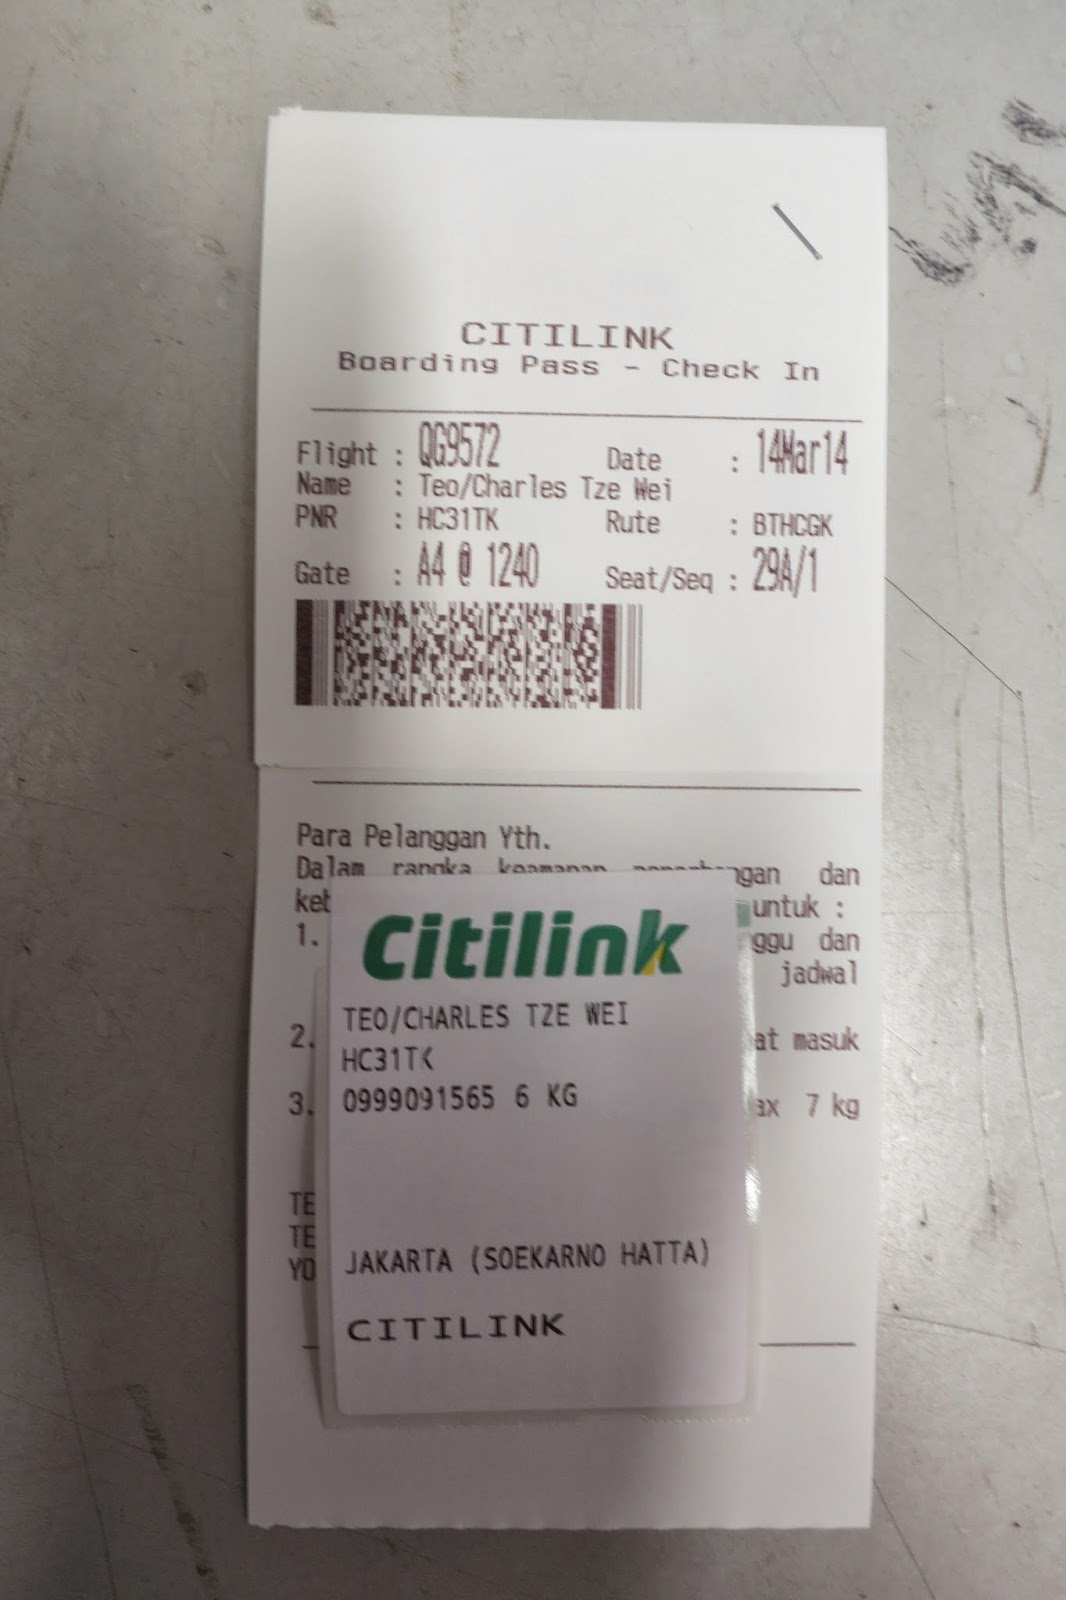 Charles Ryan S Flying Adventure Ferry Ride To Batam Citilink And A